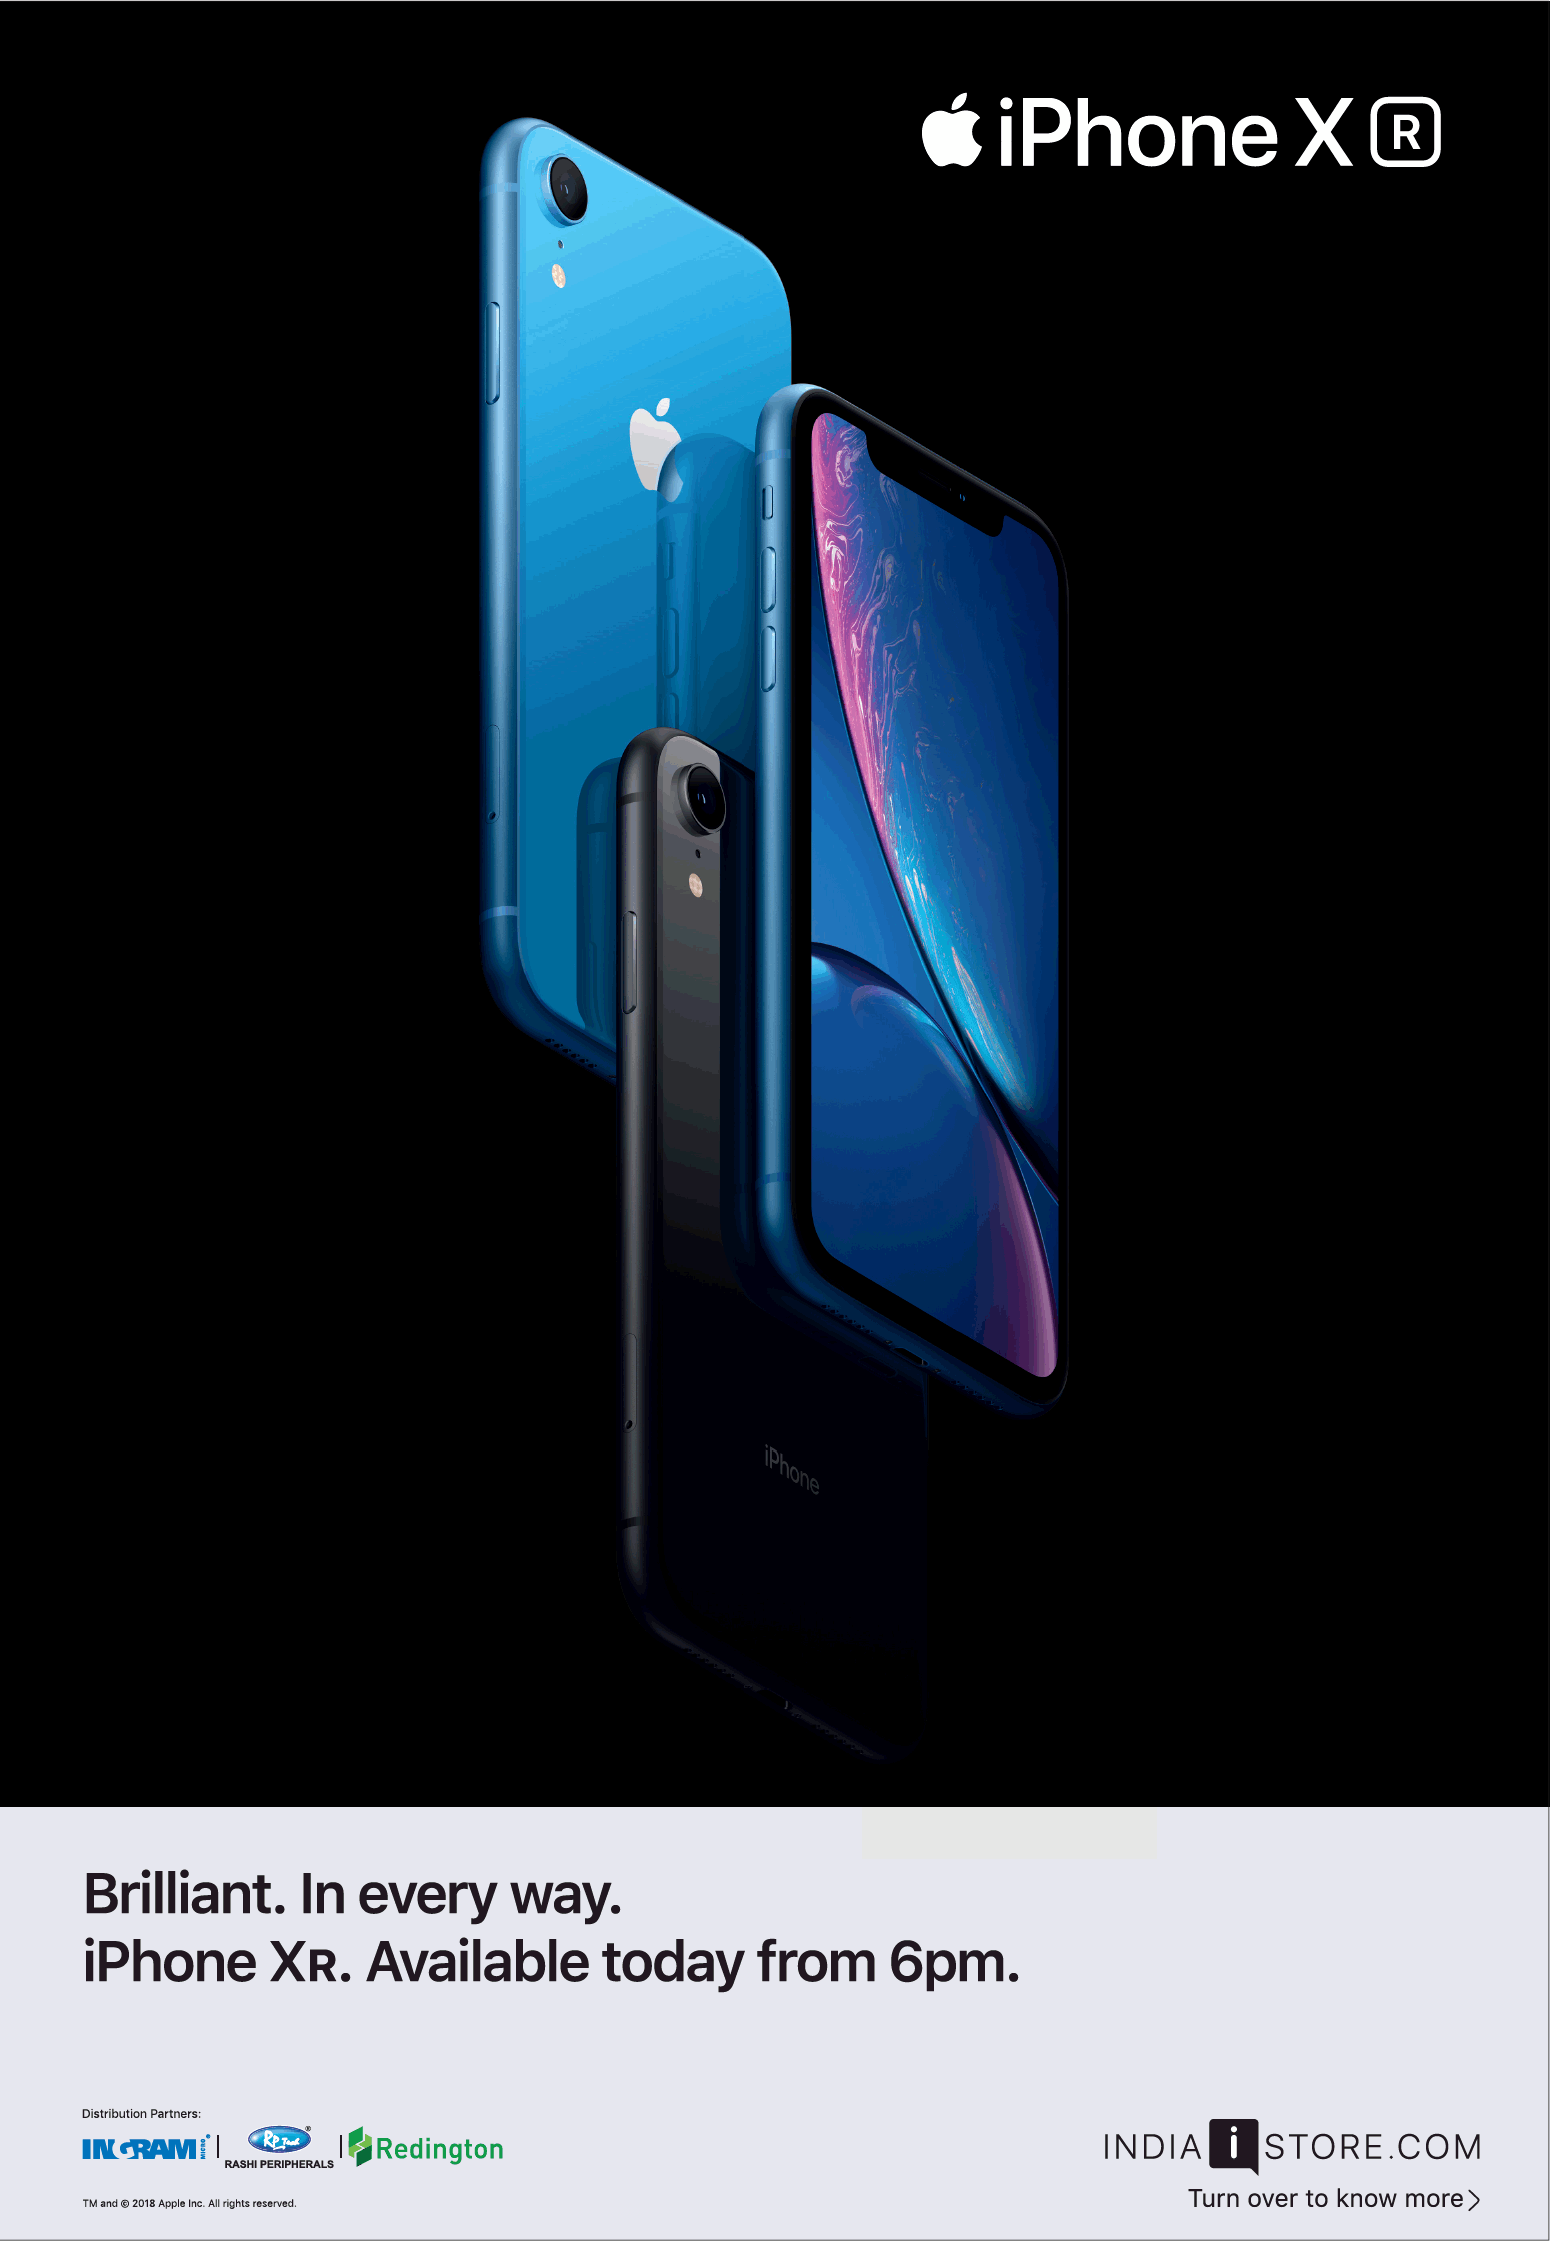 Iphone X R Brilliant In Every Way Ad Advert Gallery